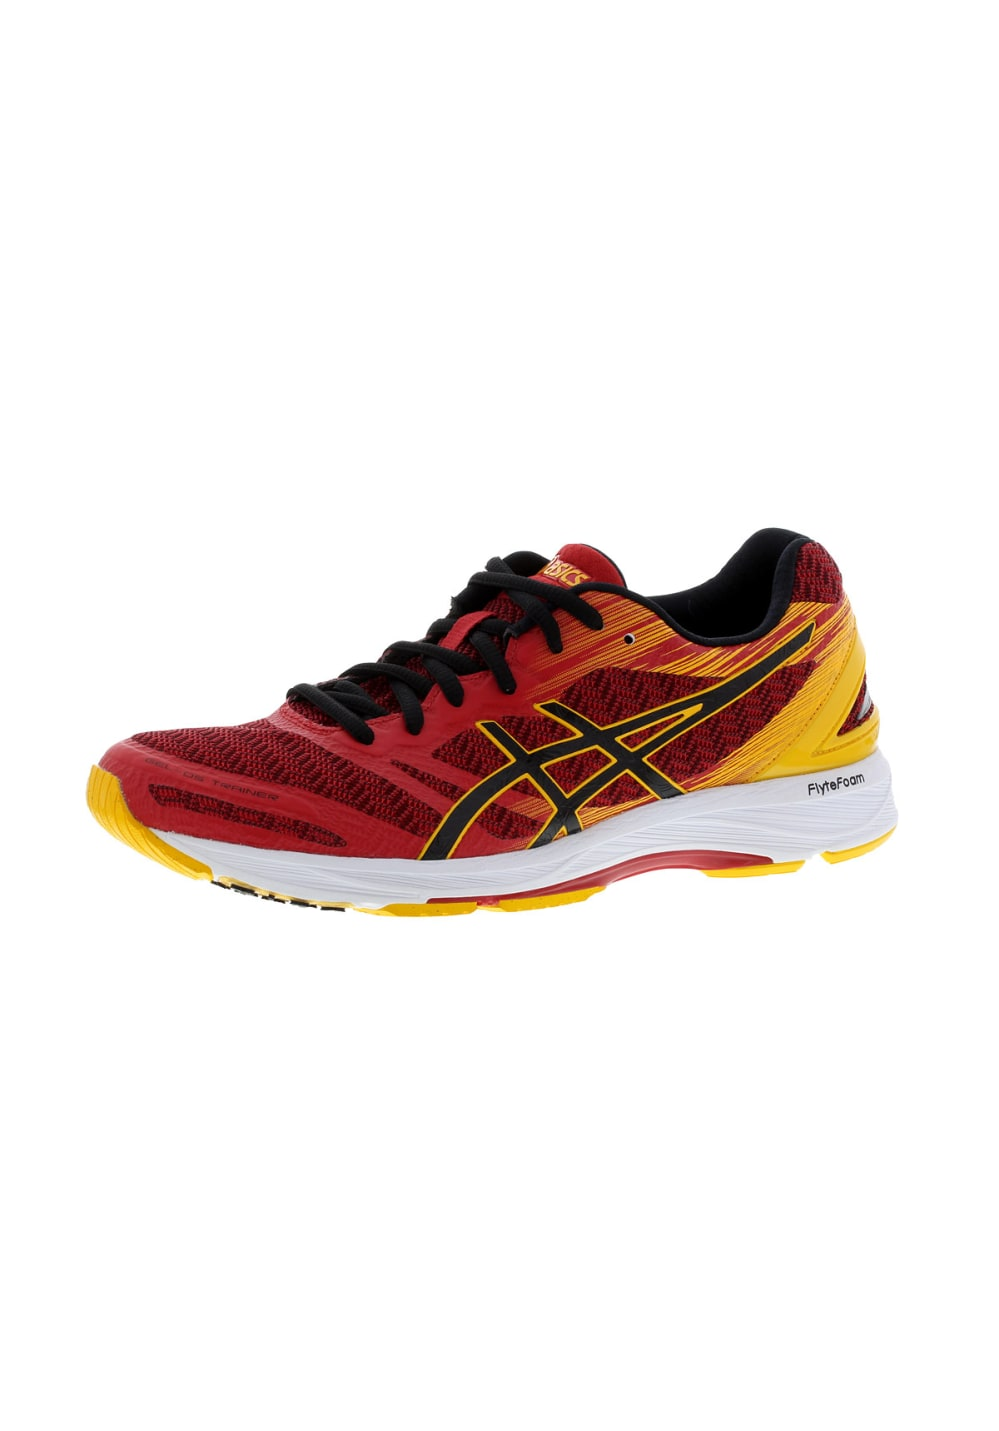 ASICS GEL DS Trainer 22 Chaussures running pour Homme Rouge